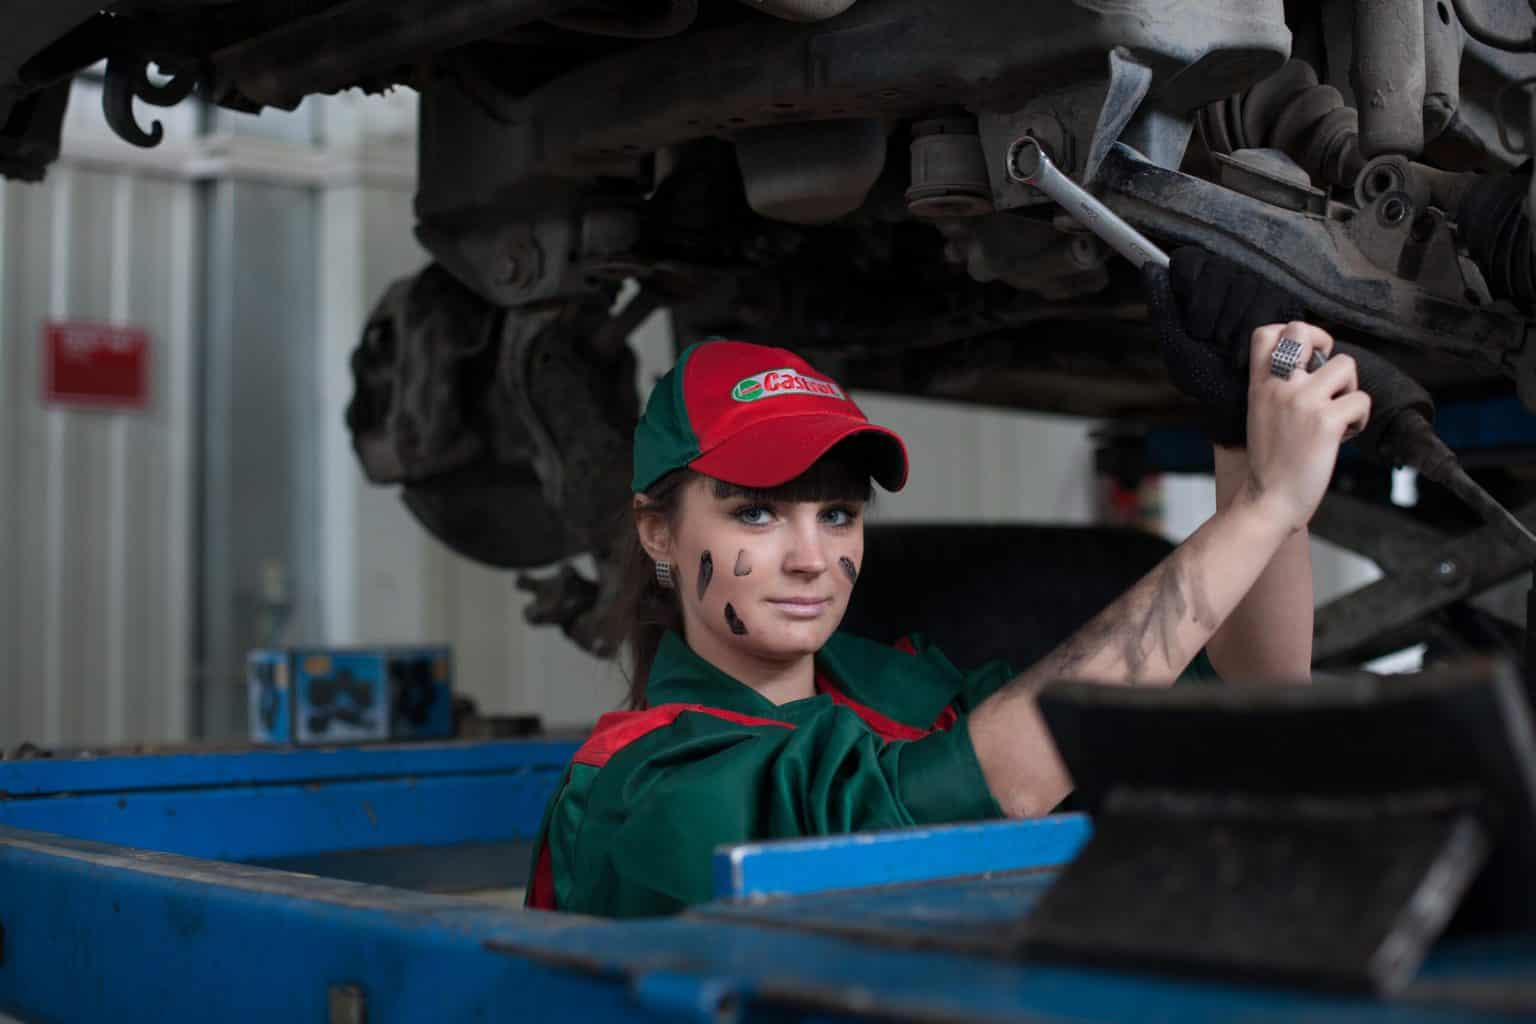 A woman fixing the engine under the vehicle